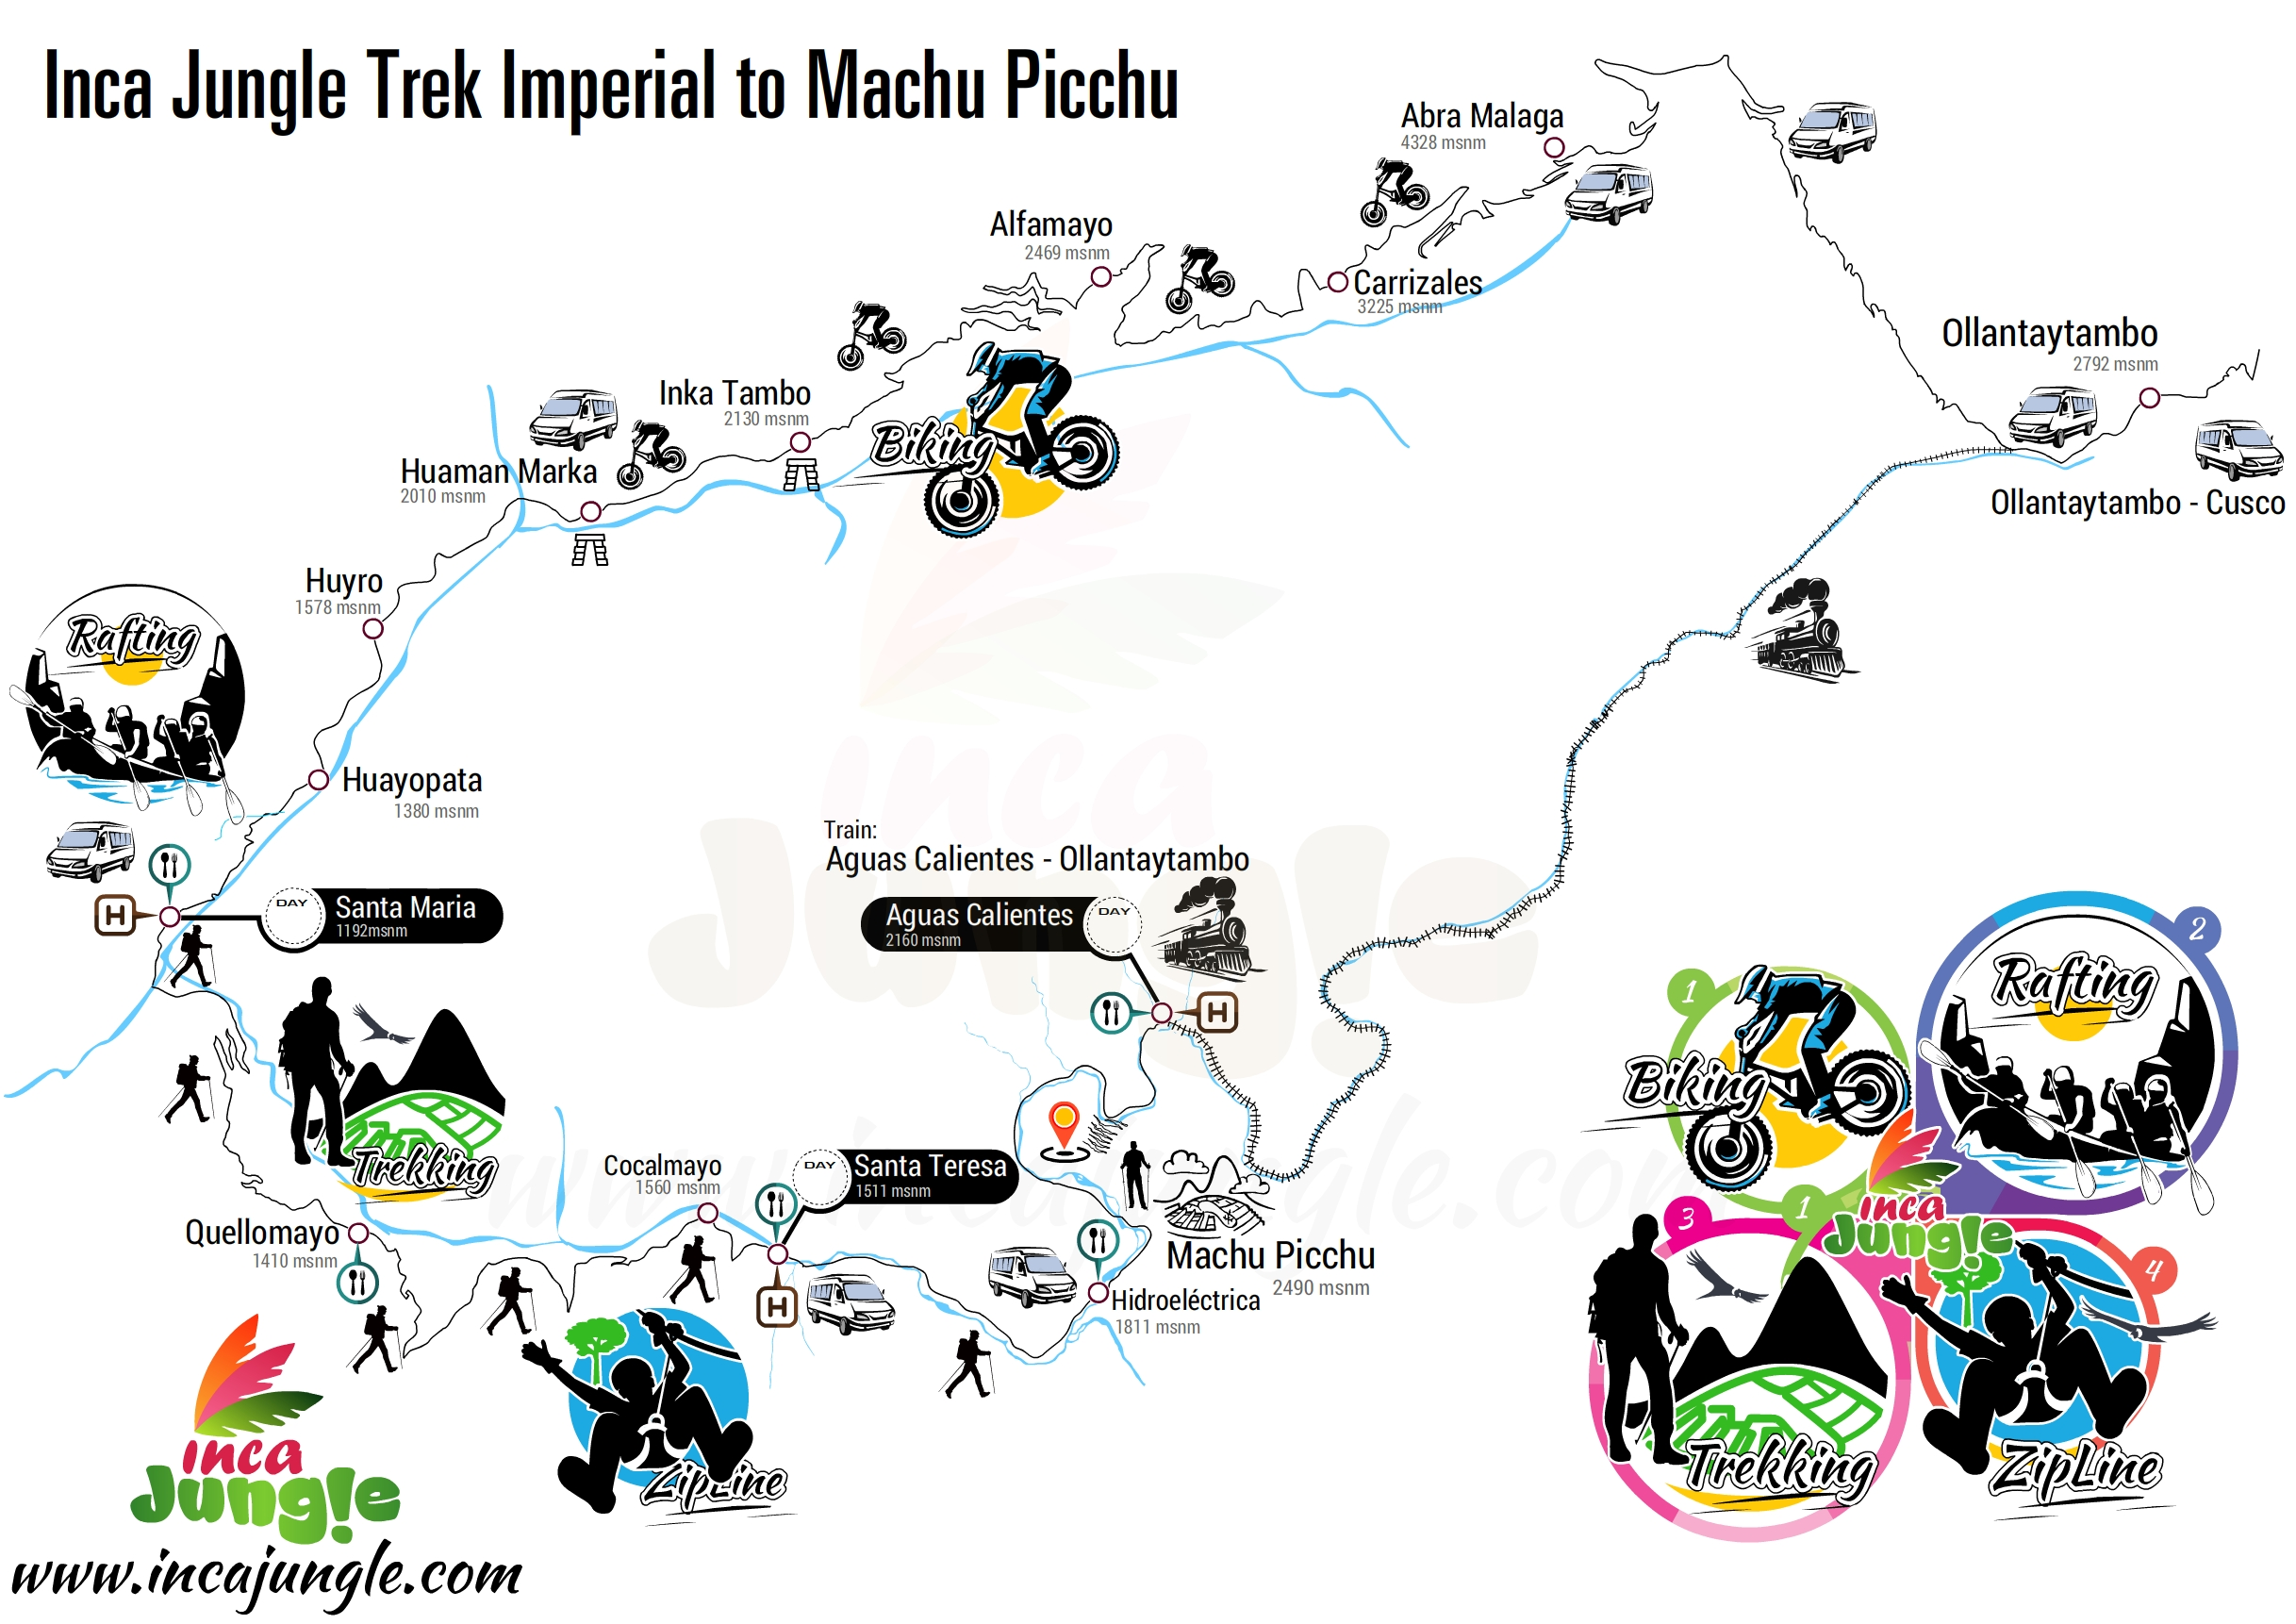 The Inca Jungle trek to Machu Picchu is by far the most adventurous trekking option in the Cusco region. It is also the most varied in terms of activities.